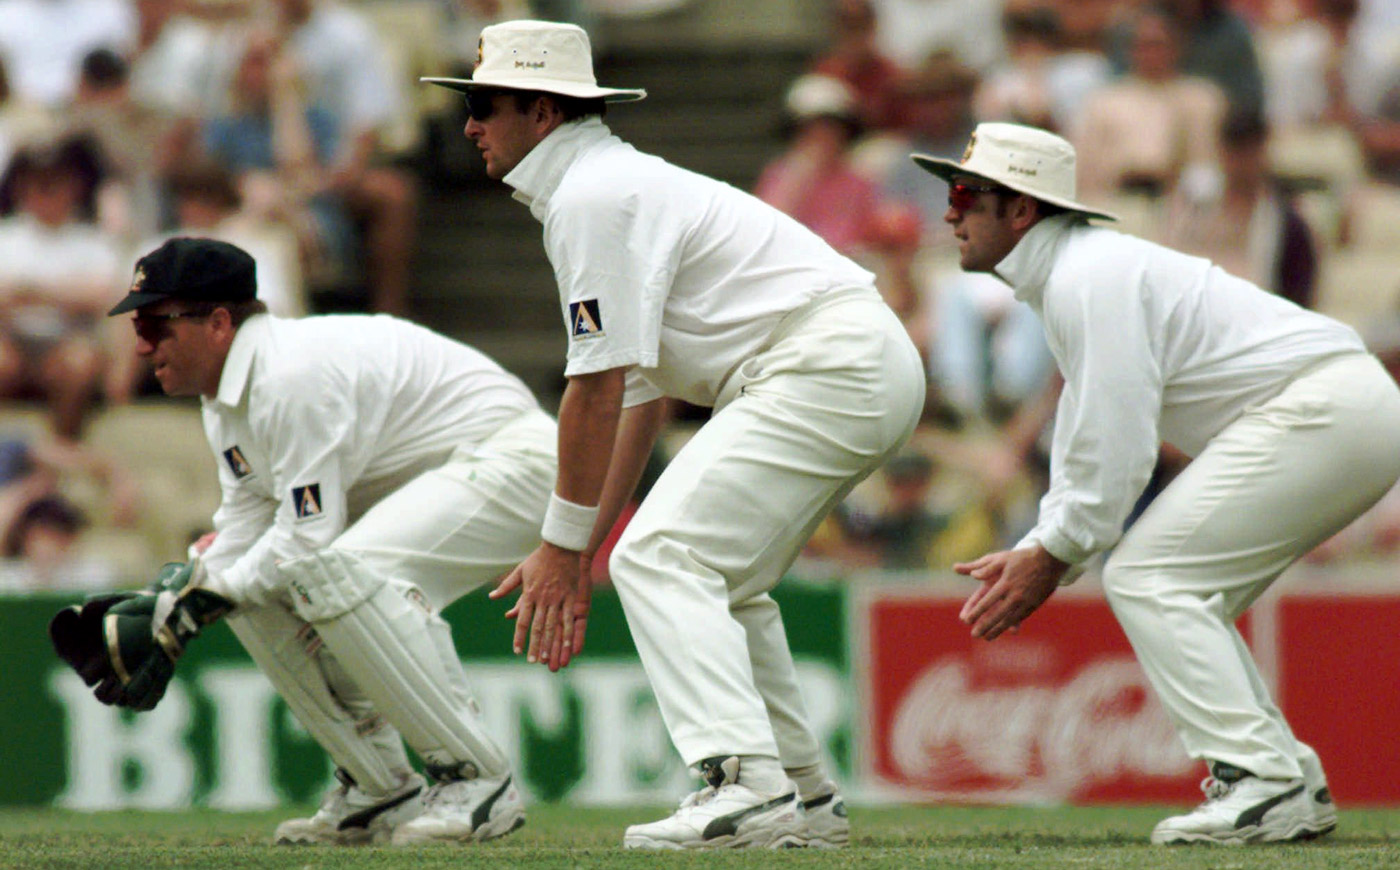 (From left) Ian Healy fields alongside Mark Taylor and Mark Waugh at the SCG against West Indies in 1996